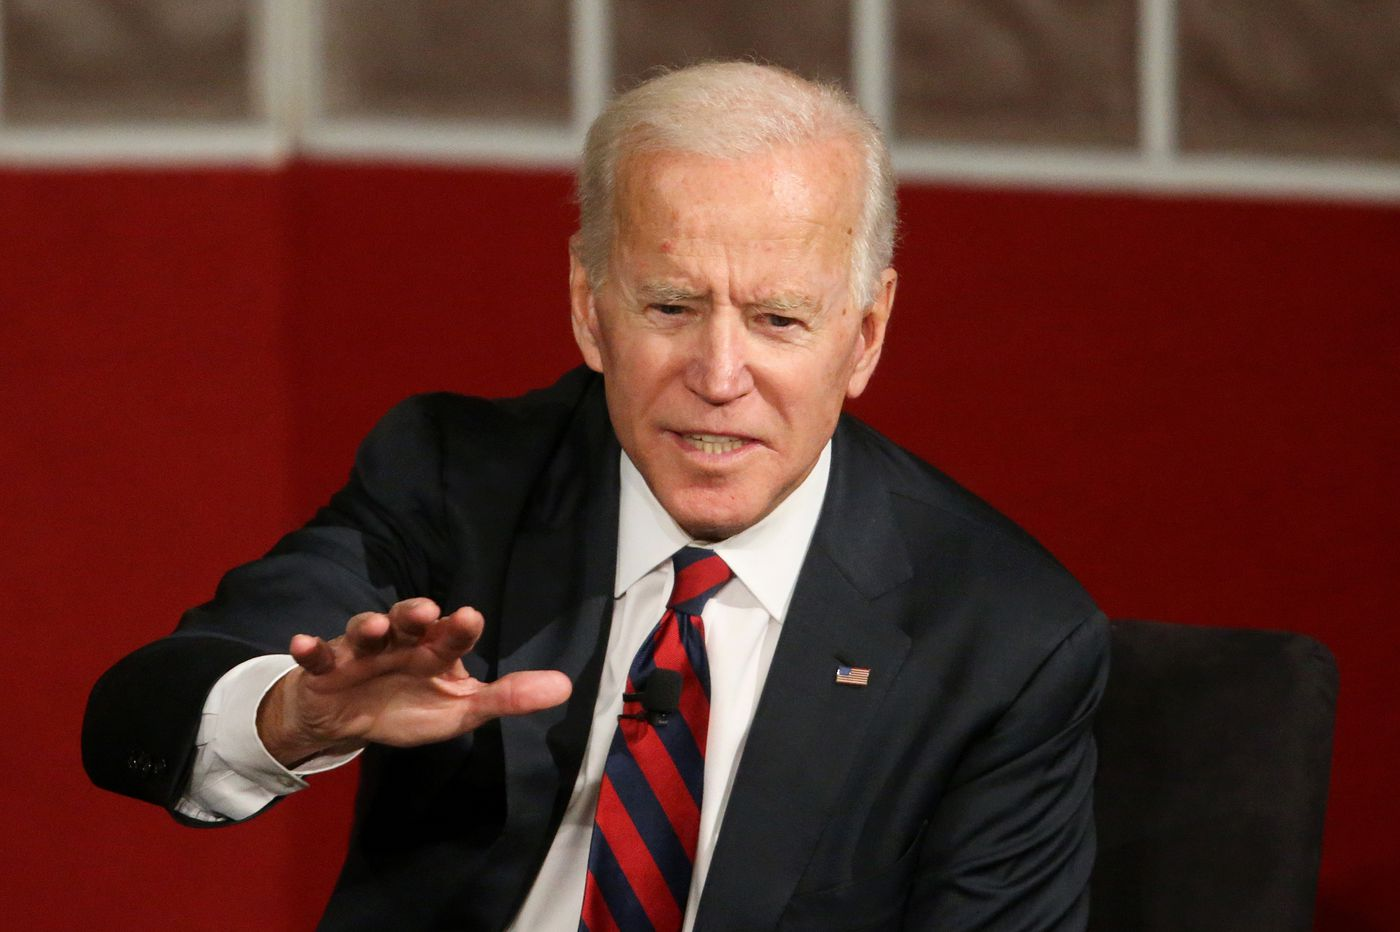 Joe Biden is running for president, launches his 2020 campaign